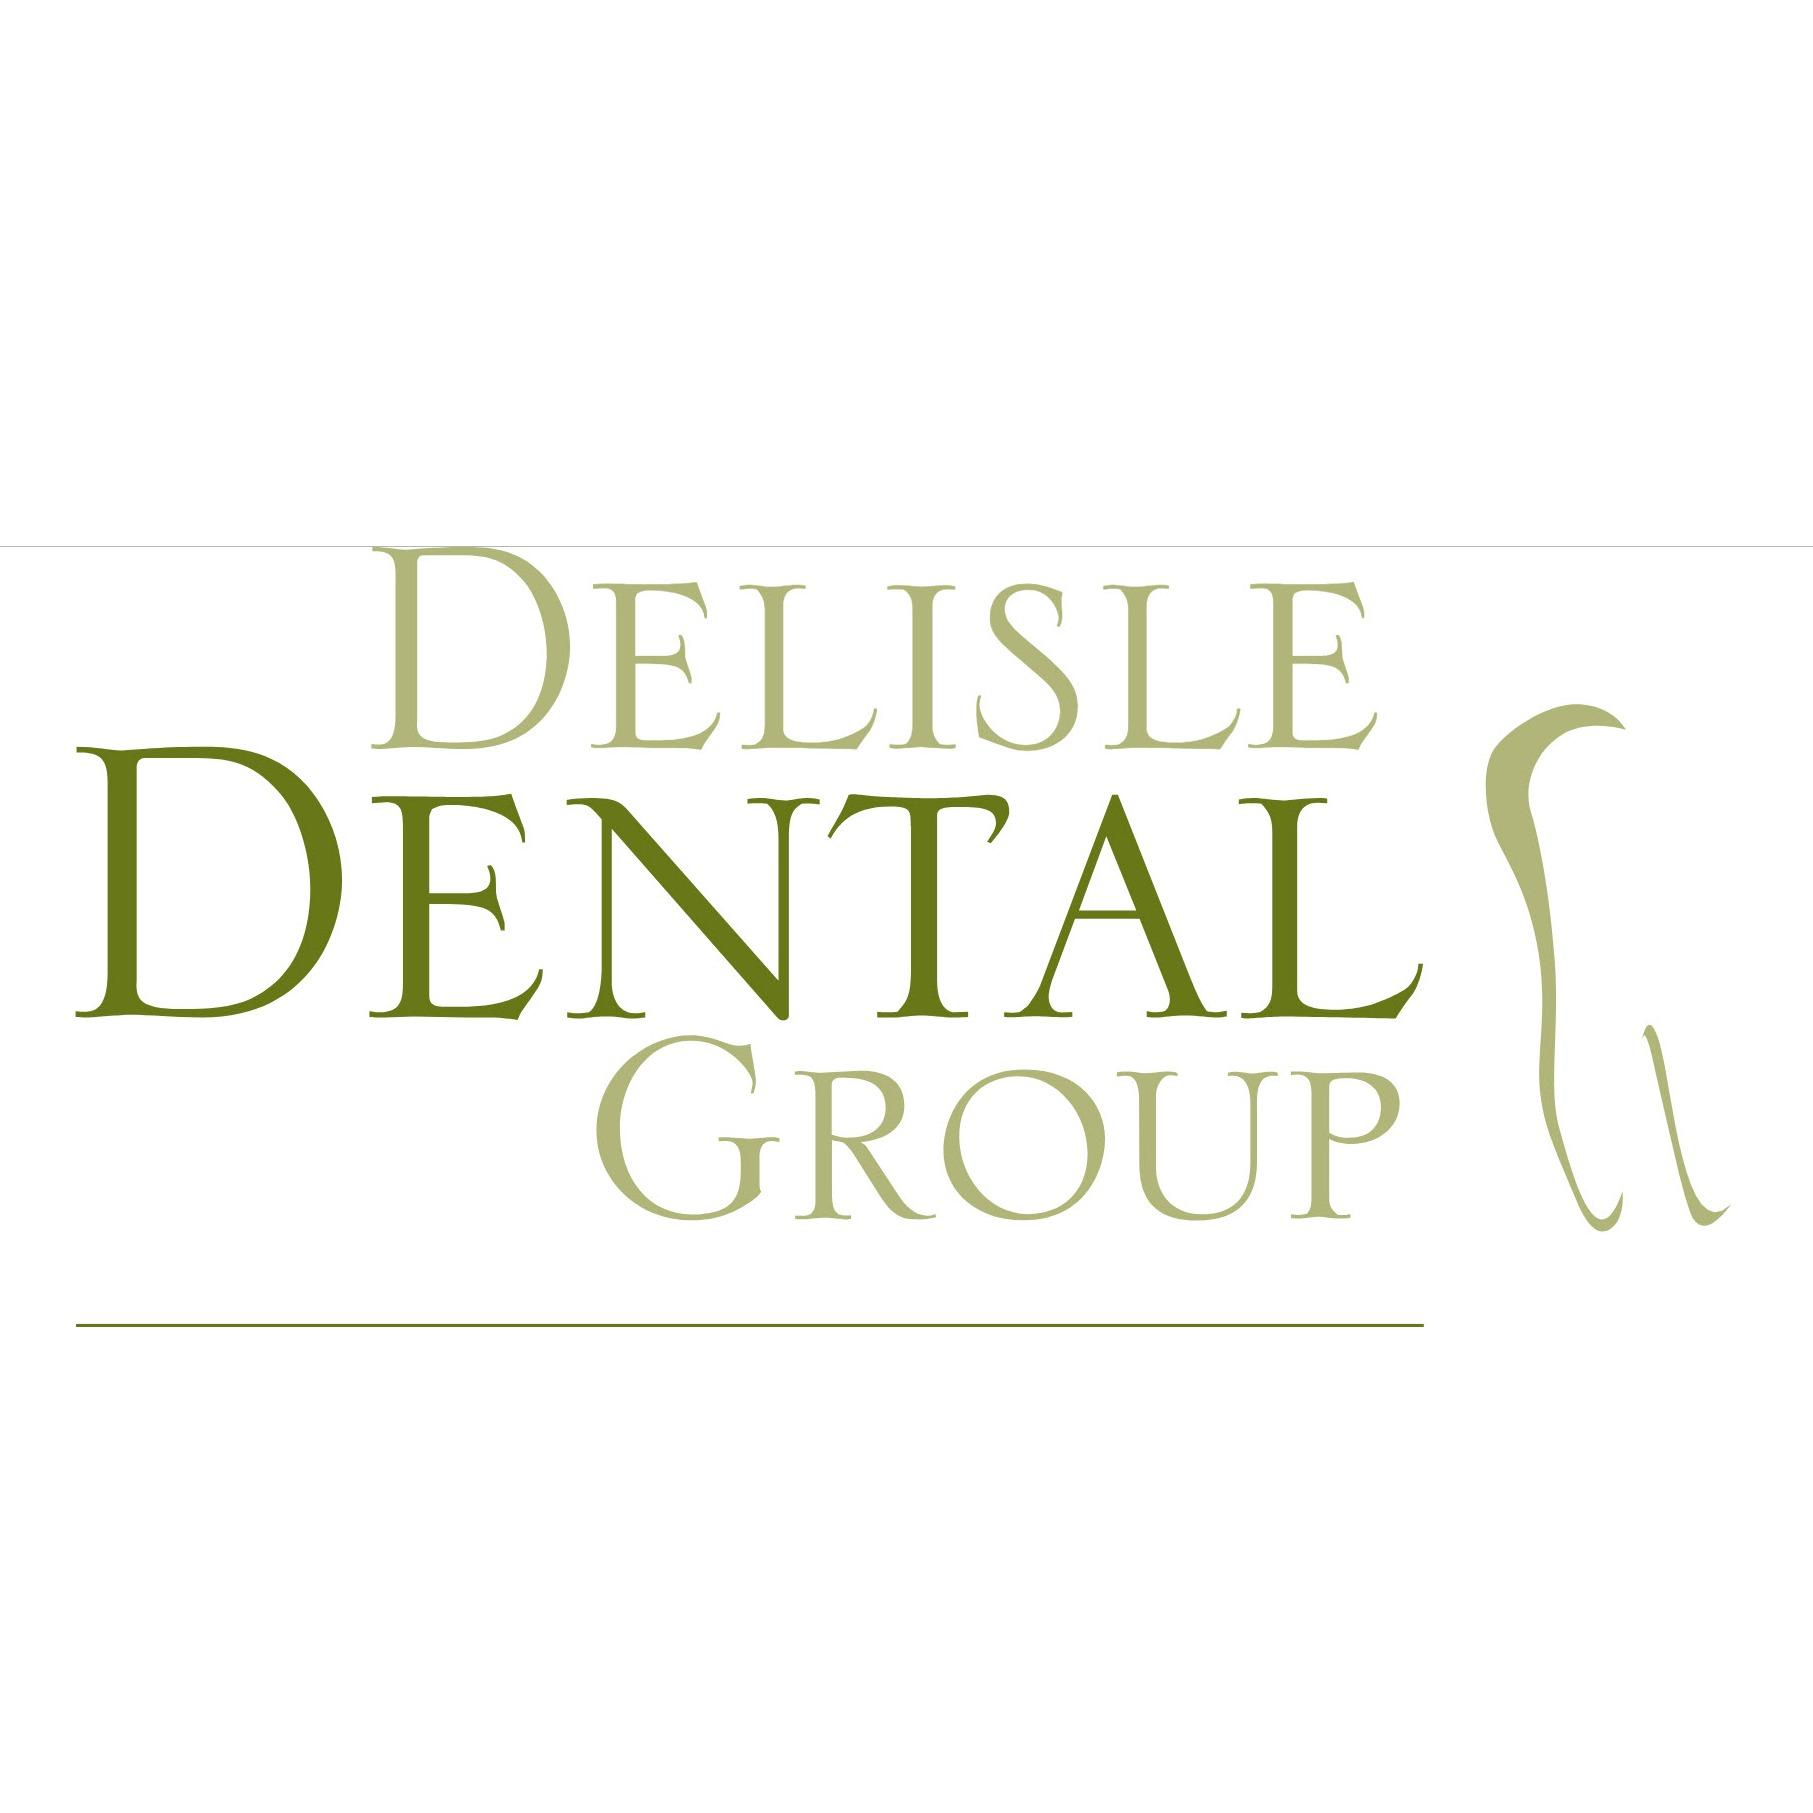 Delisle Dental Group - Toronto, ON M4T 2S9 - (416)964-6671 | ShowMeLocal.com